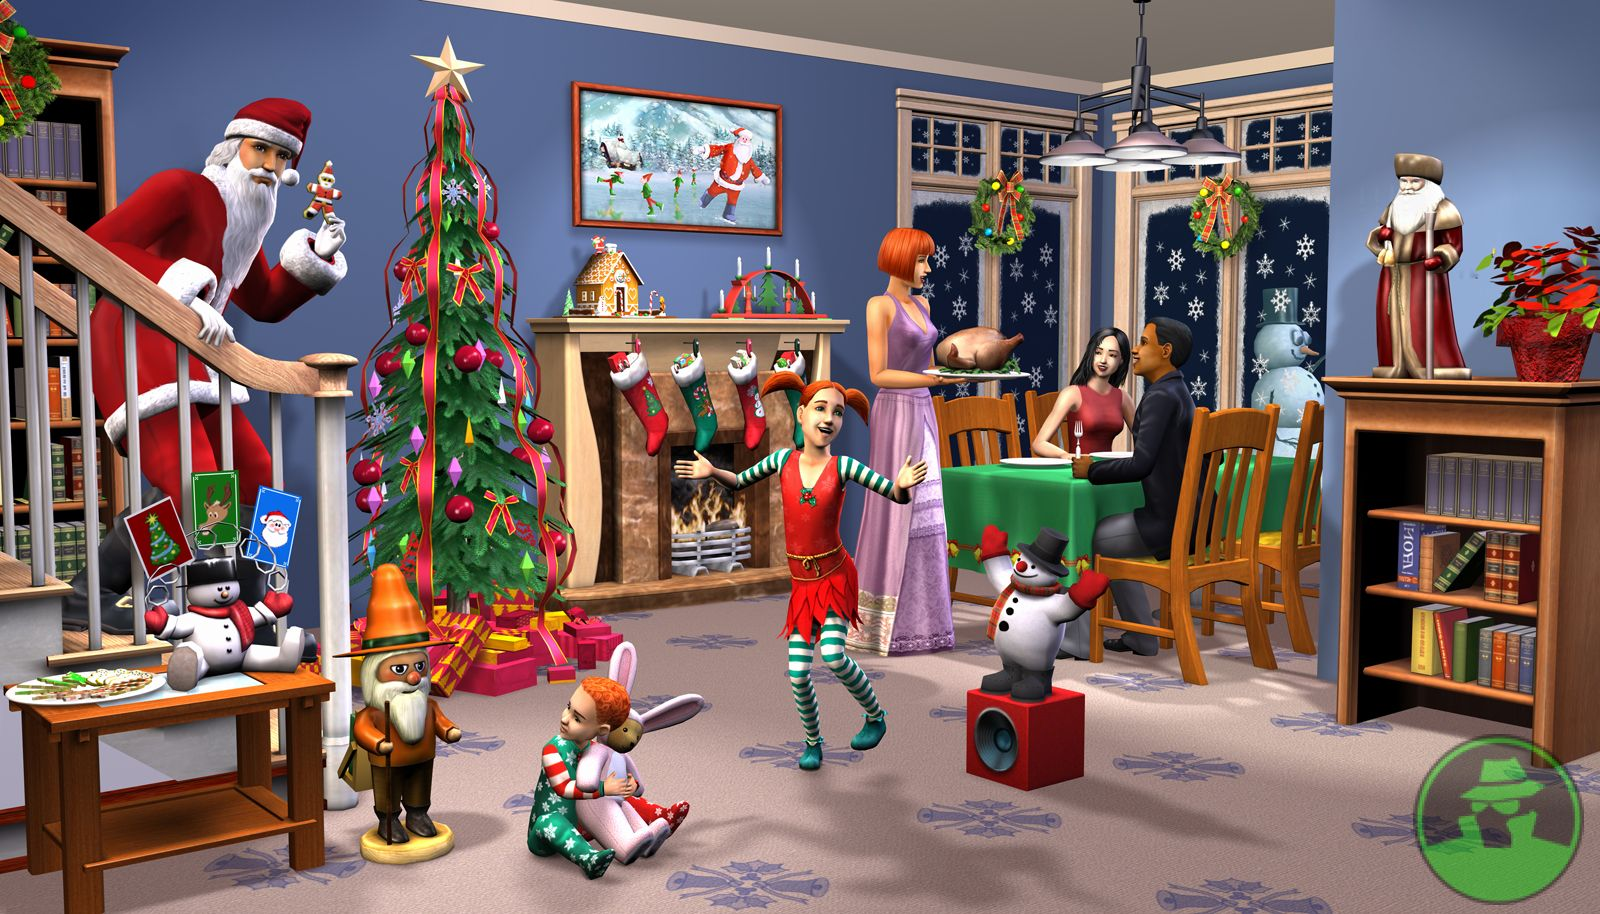 Sims 3 Christmas Holiday CC - FREE Downloads